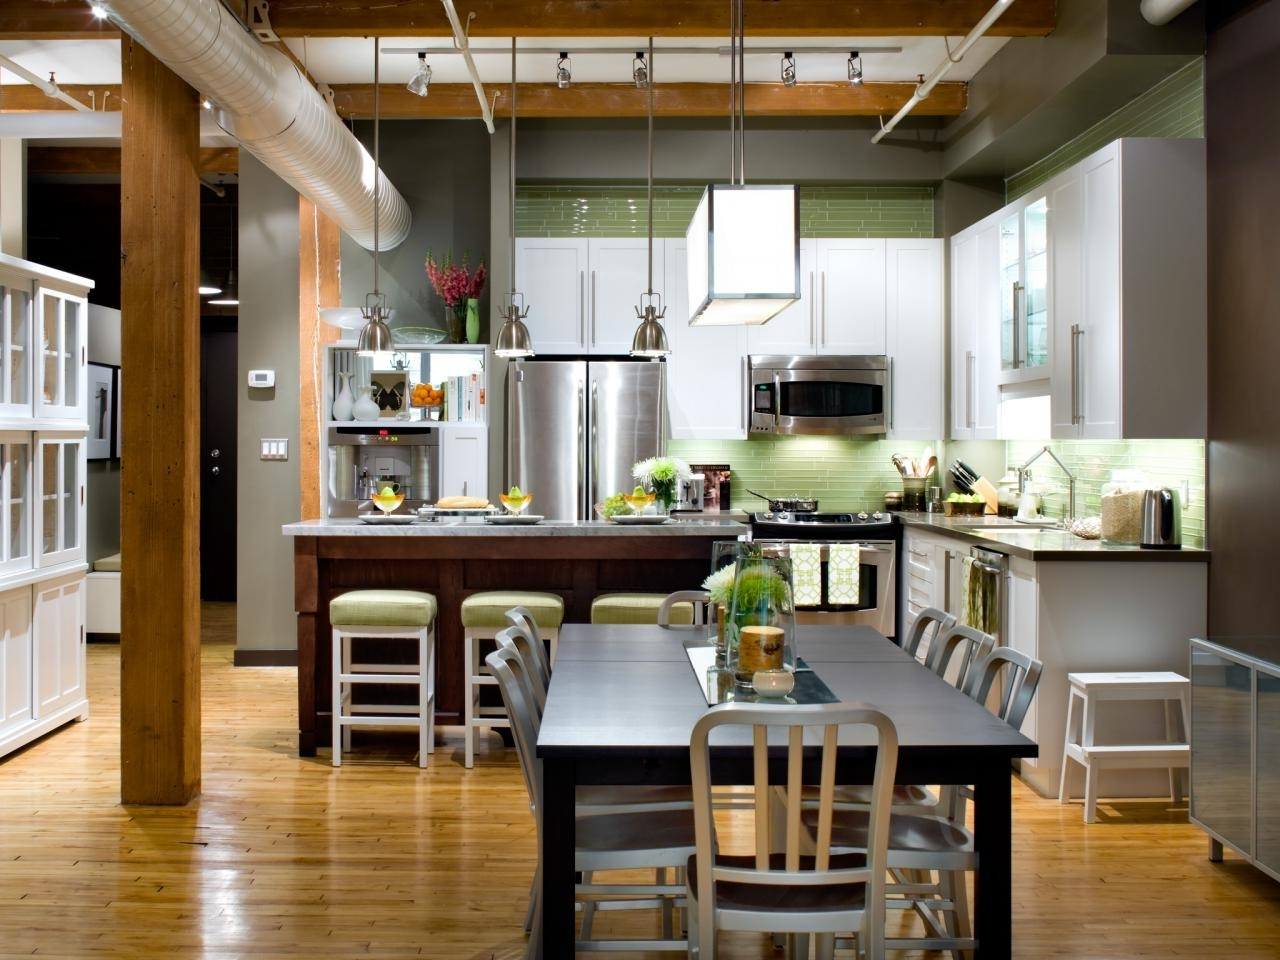 L Shaped Kitchen Design: Pictures, Ideas & Tips From Hgtv | Hgtv 40+ L Shaped Living Room Dining Room Decorating Ideas Inspirations